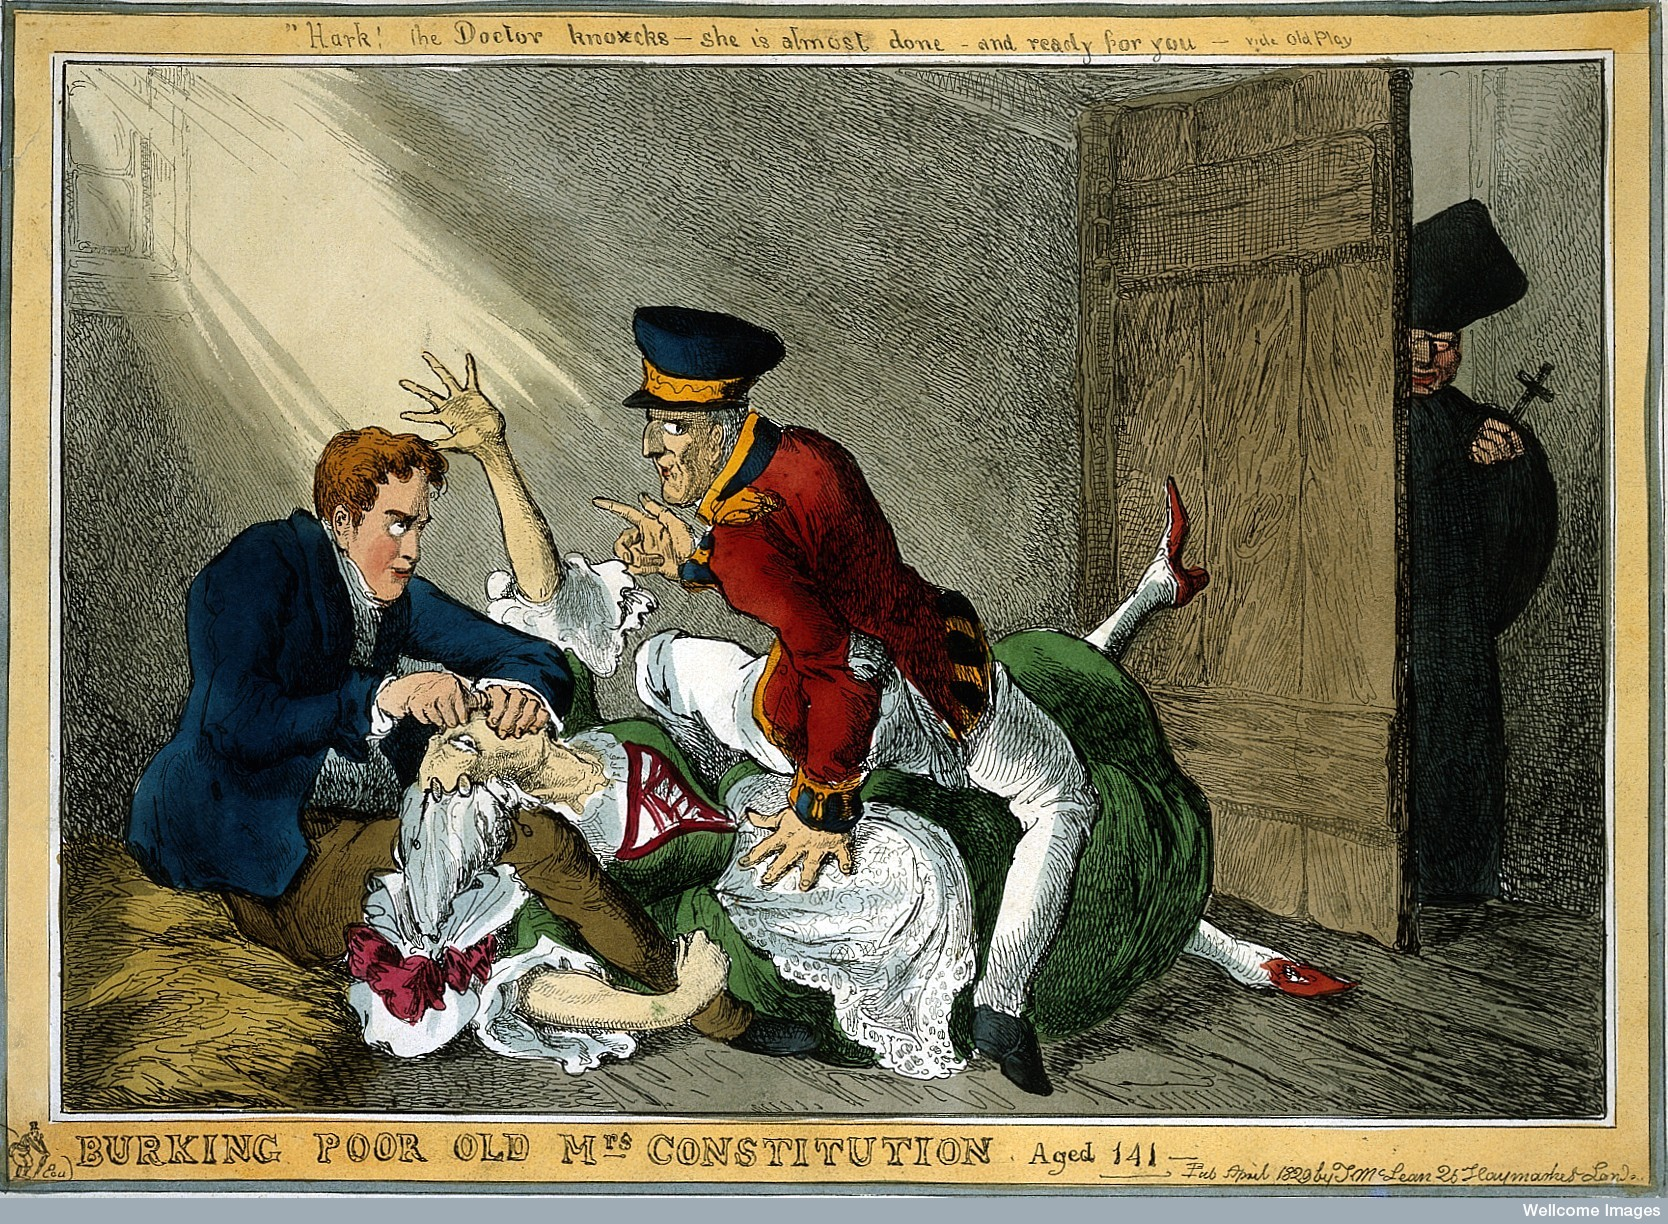 Burke and Hare suffocating Mrs Docherty for sale to Dr. Knox; satirizing Wellington and Peel extinguishing the Constitution for Catholic Emancipation.  Wellcome Images  L0019663